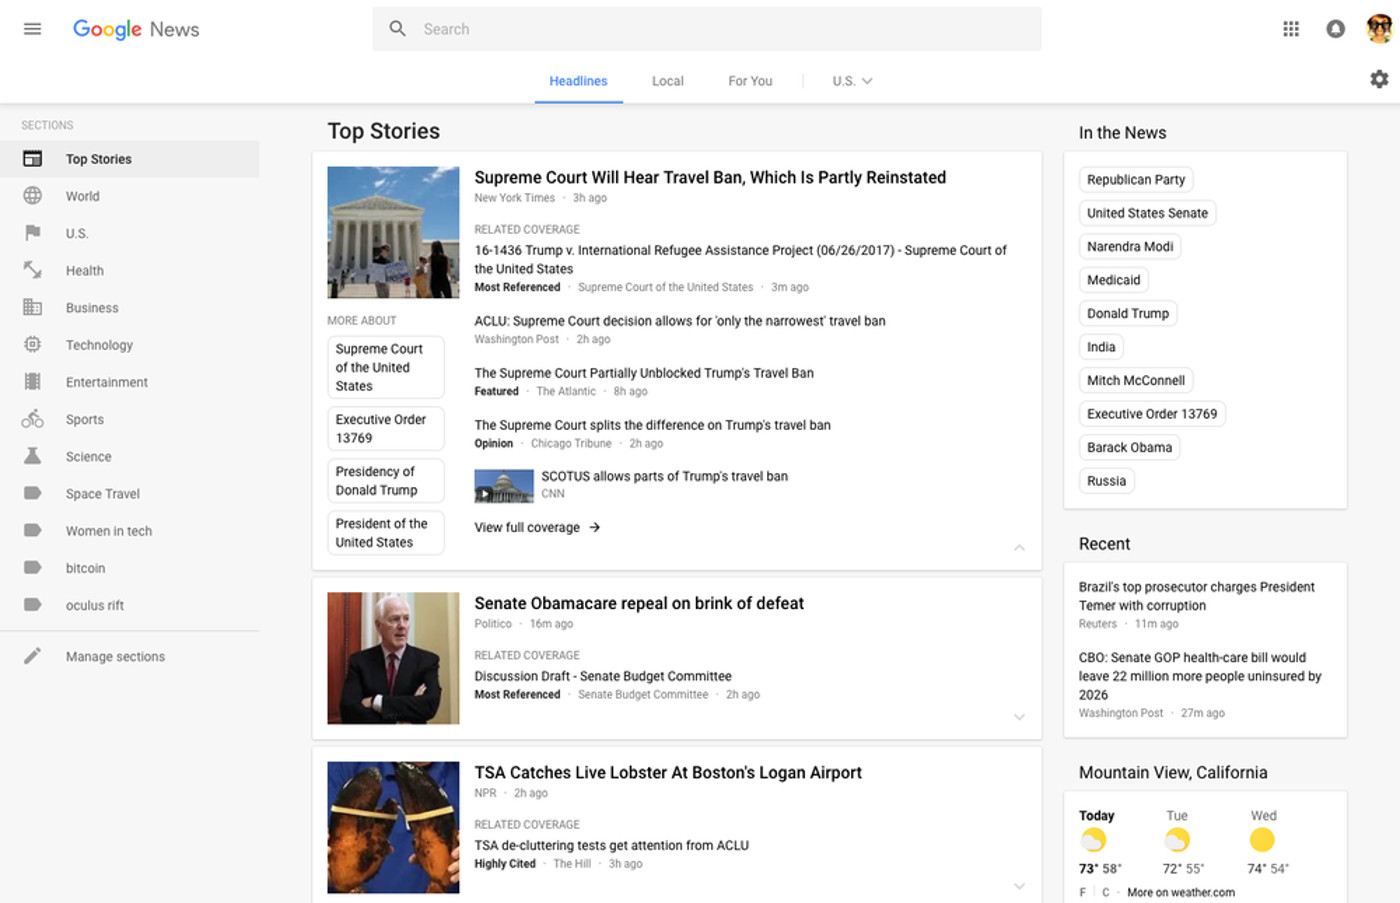 Google News redesigned with a cleaner look